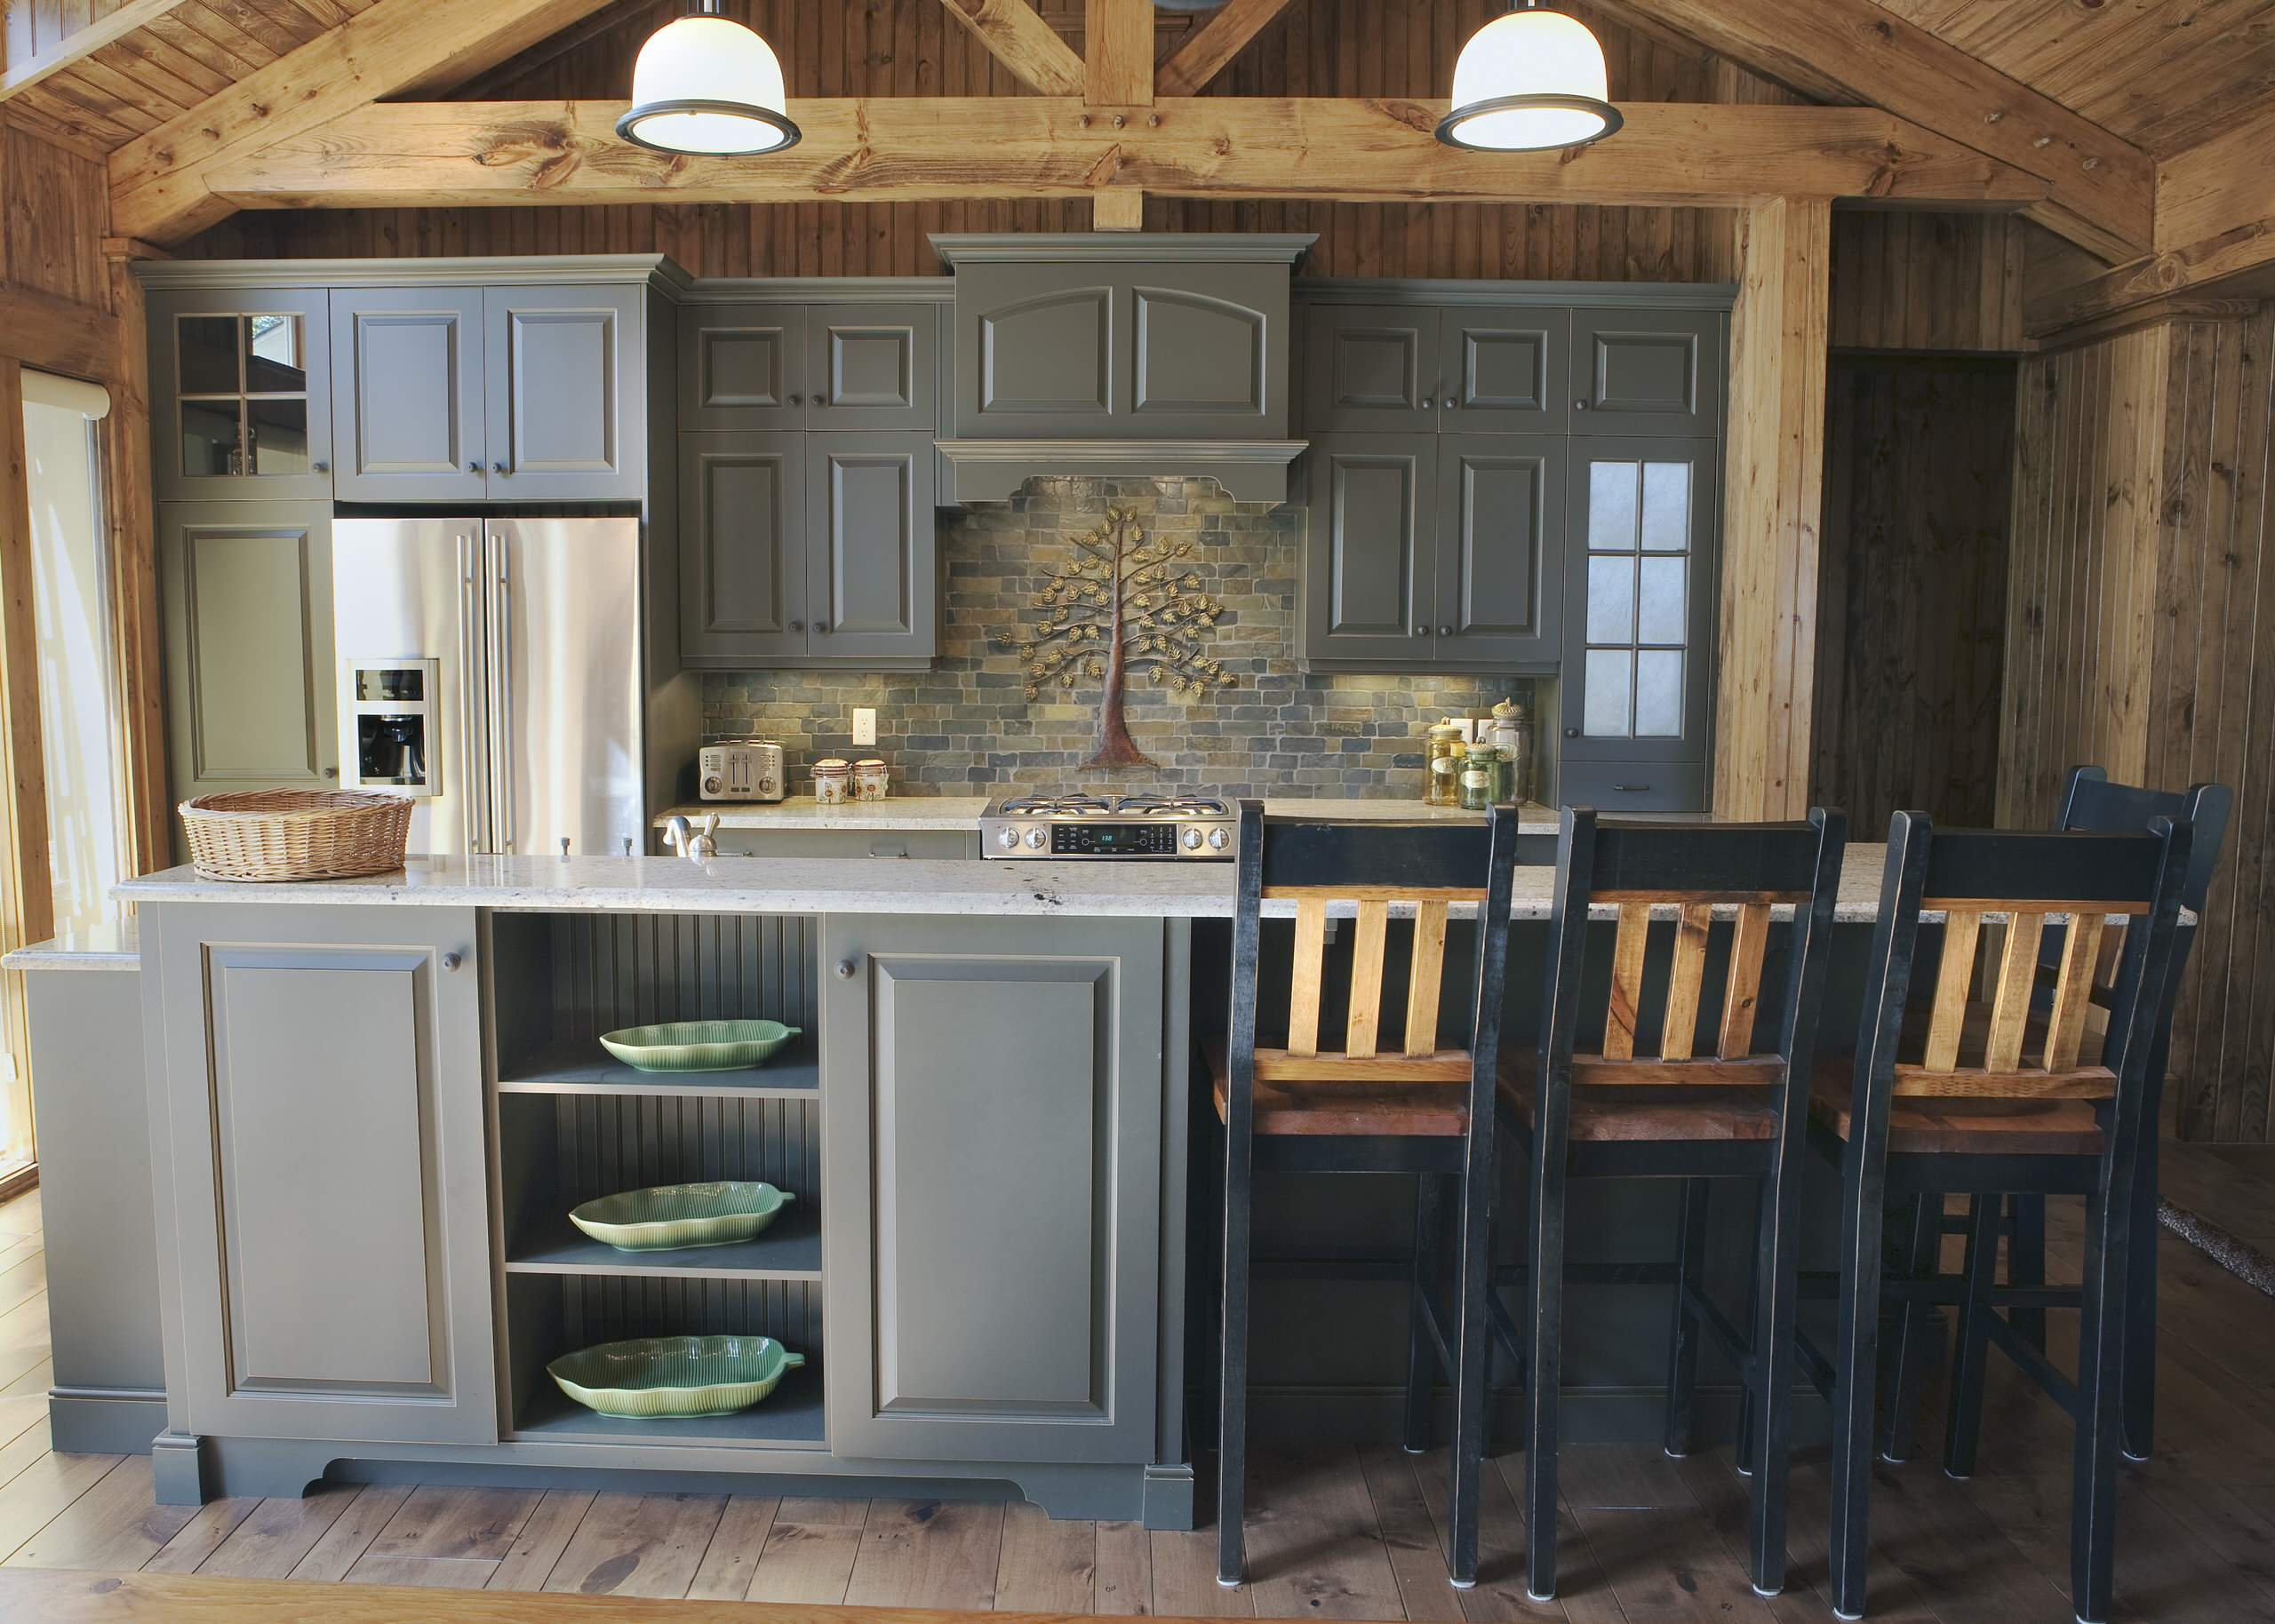 75 Beautiful Kitchen With Gray Cabinets And Slate Backsplash Pictures Ideas July 2021 Houzz